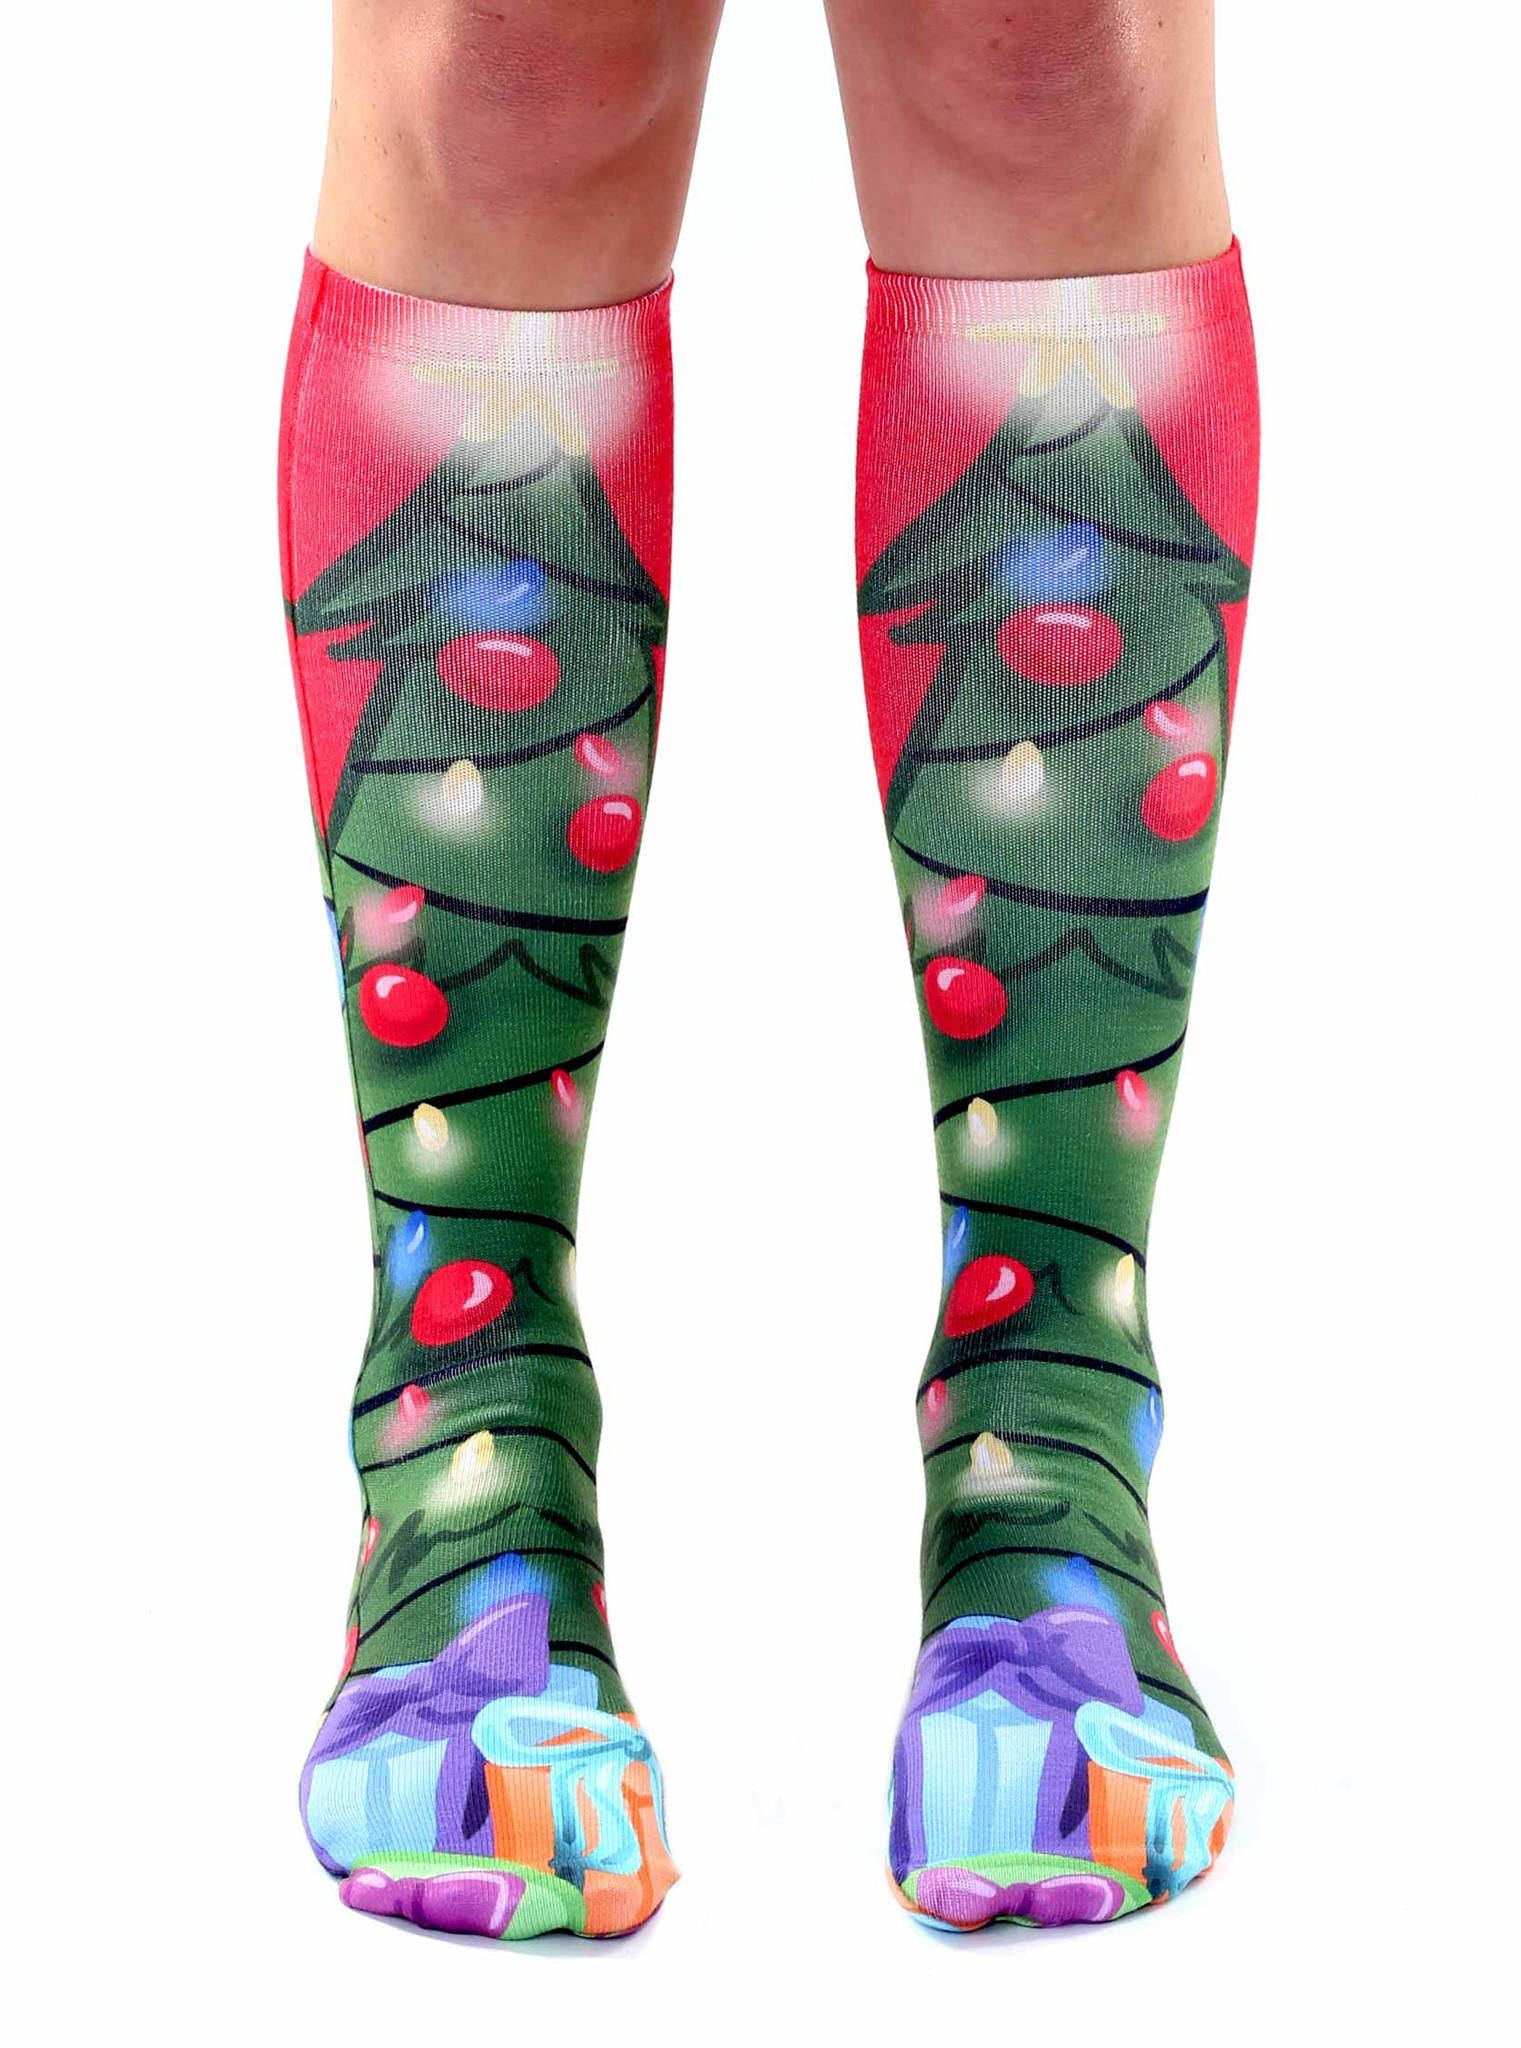 75124280bf2 Christmas Tree Knee High Socks from Living Royal. Saved to Holiday Socks.  Shop more products from Living Royal on Wanelo.